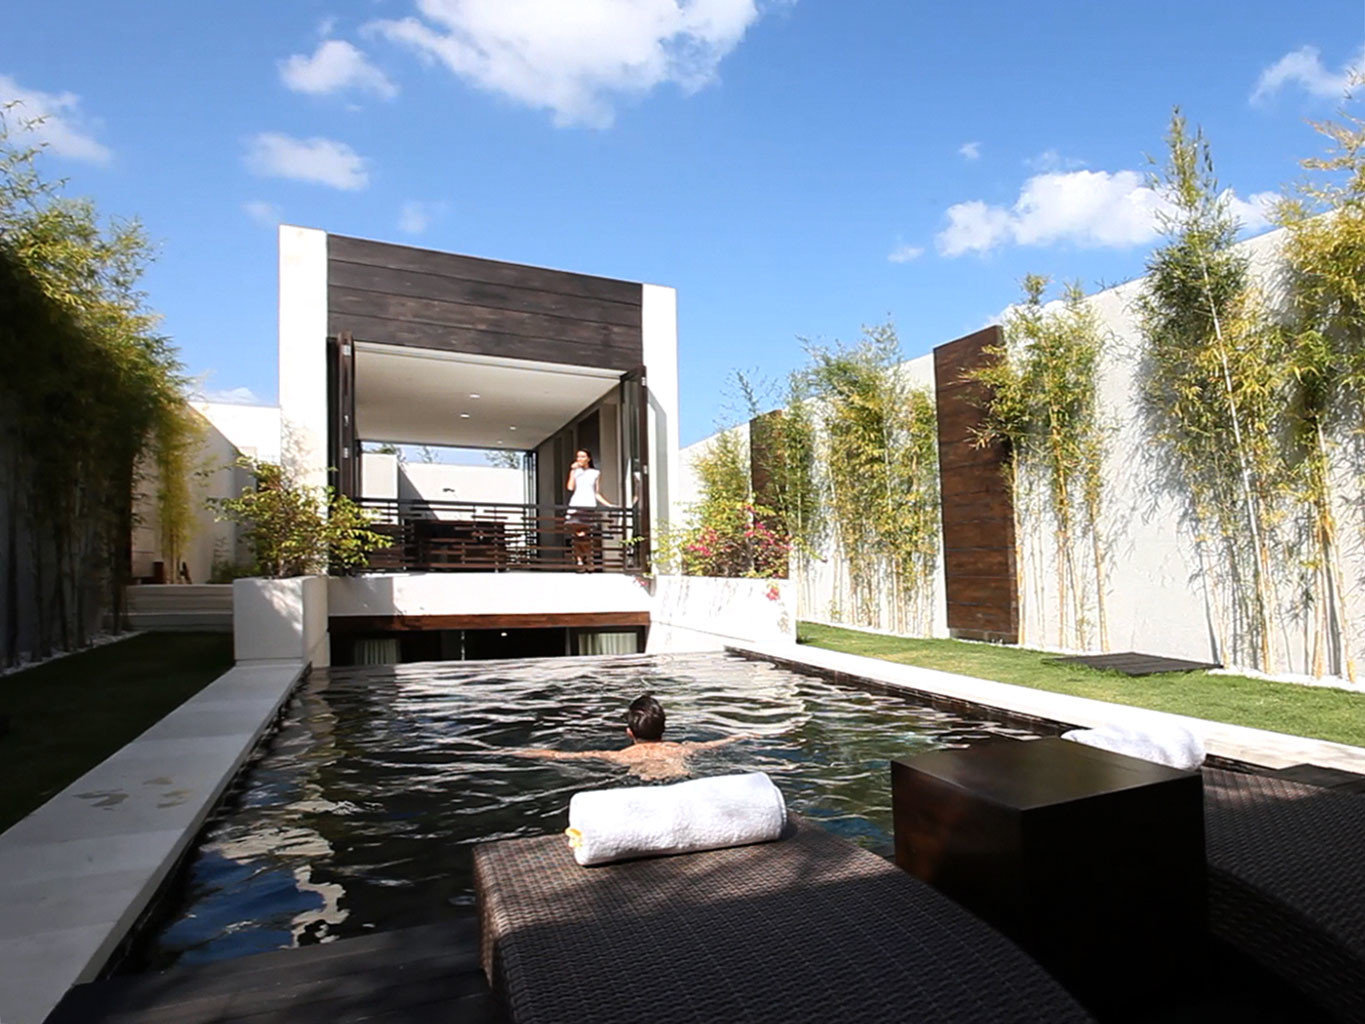 Elegant Lounge Luxury Pool sky tree house property home Architecture swimming pool Villa backyard condominium professional Courtyard residential area outdoor structure mansion landscape architect stone